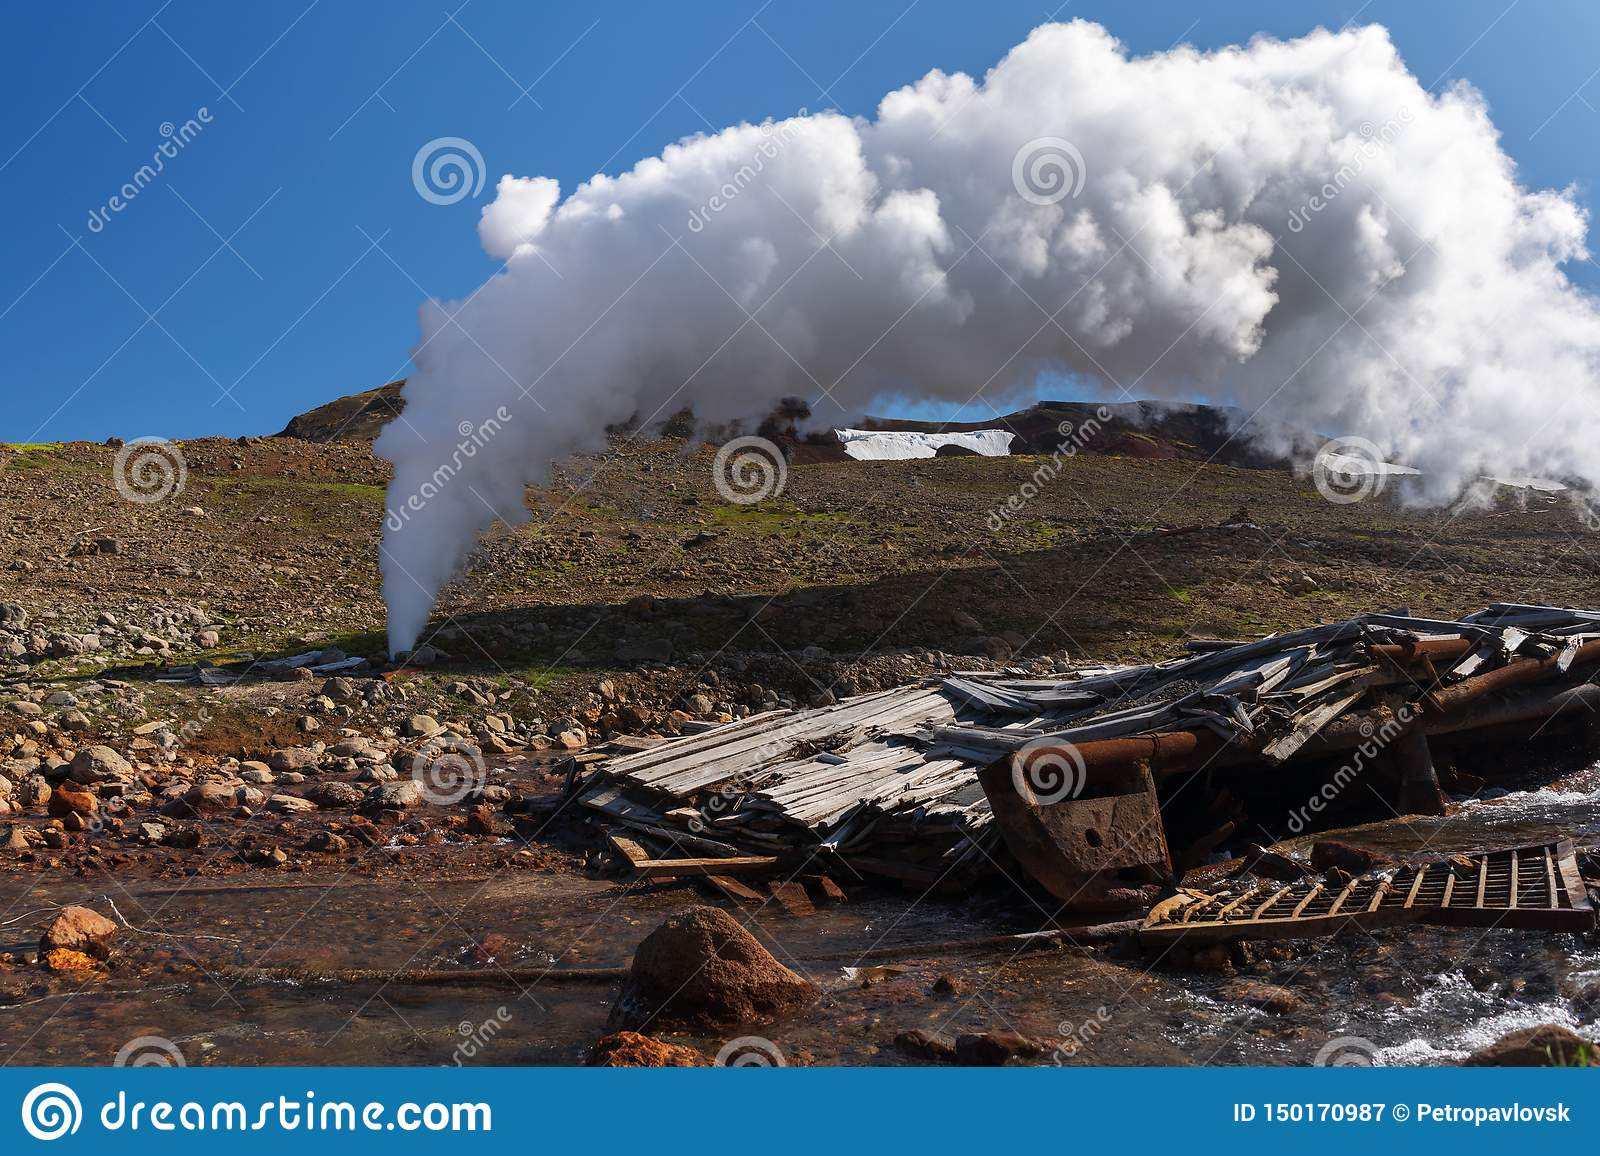 Thermal steam-water mixture Emission from well in geothermal deposit area